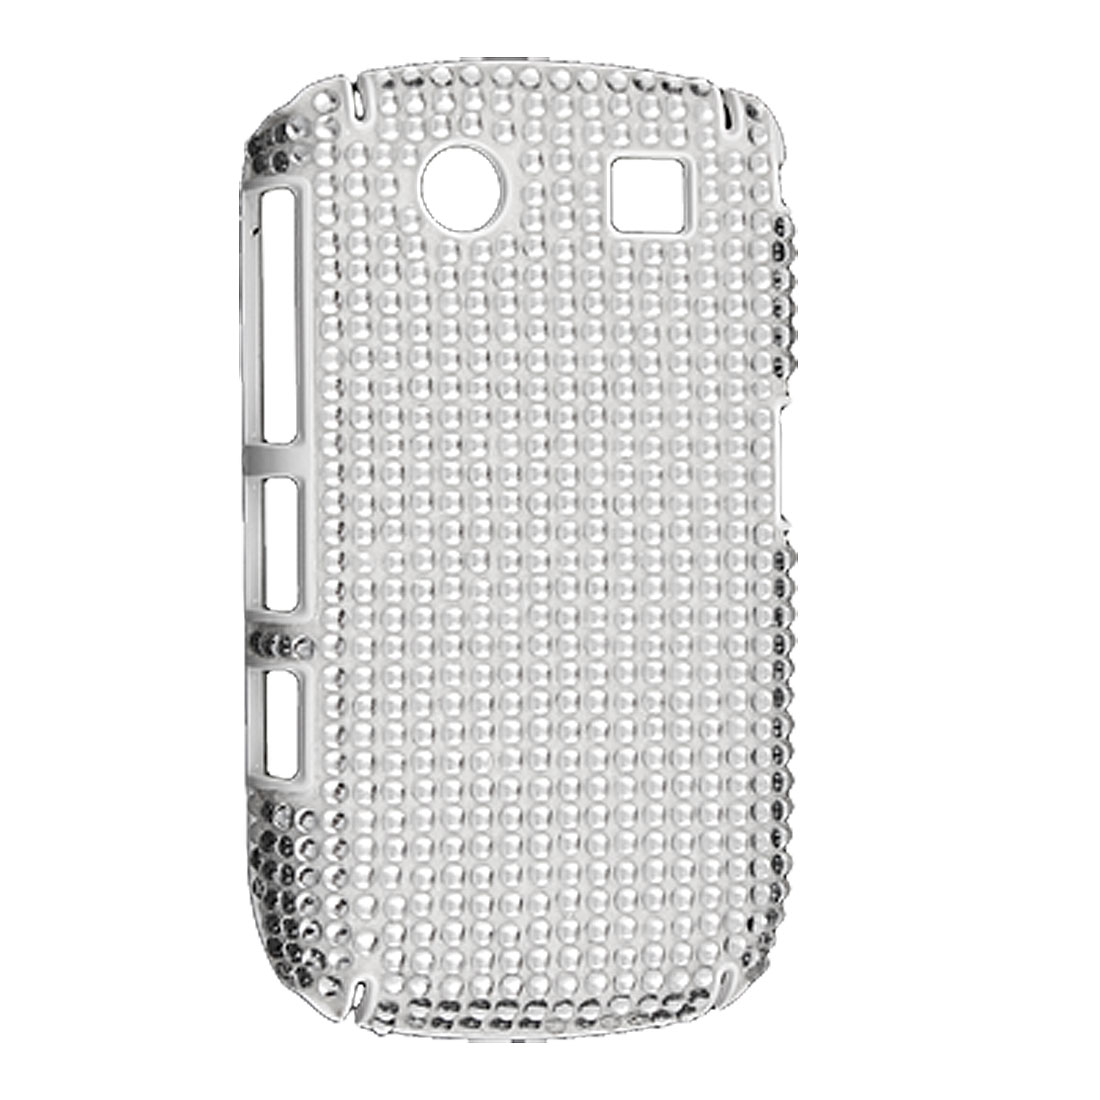 Silver Tone Hard Crystal Coated Guard for Blackberry 8900